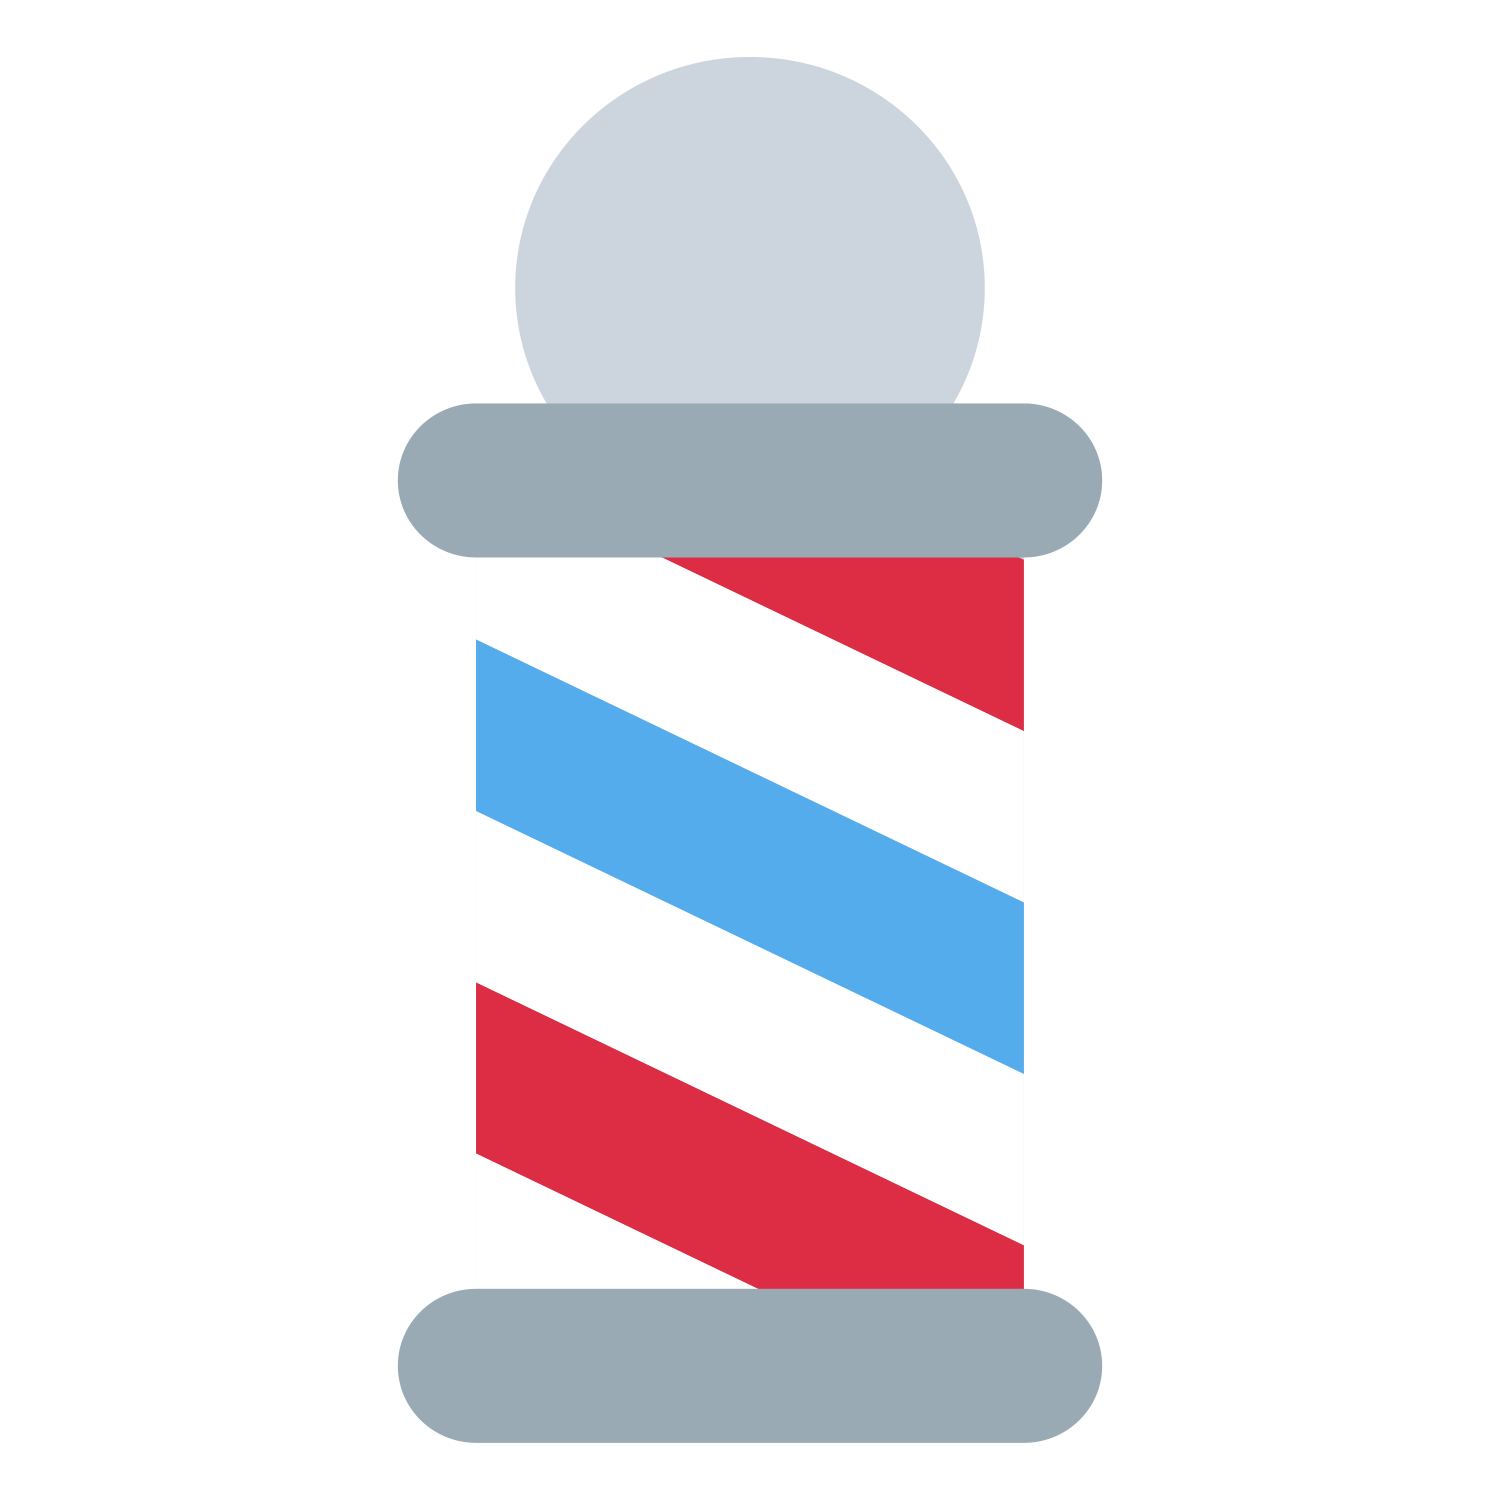 Domain Thumb Signal Emojipedia Pole Barber Sticker PNG Image